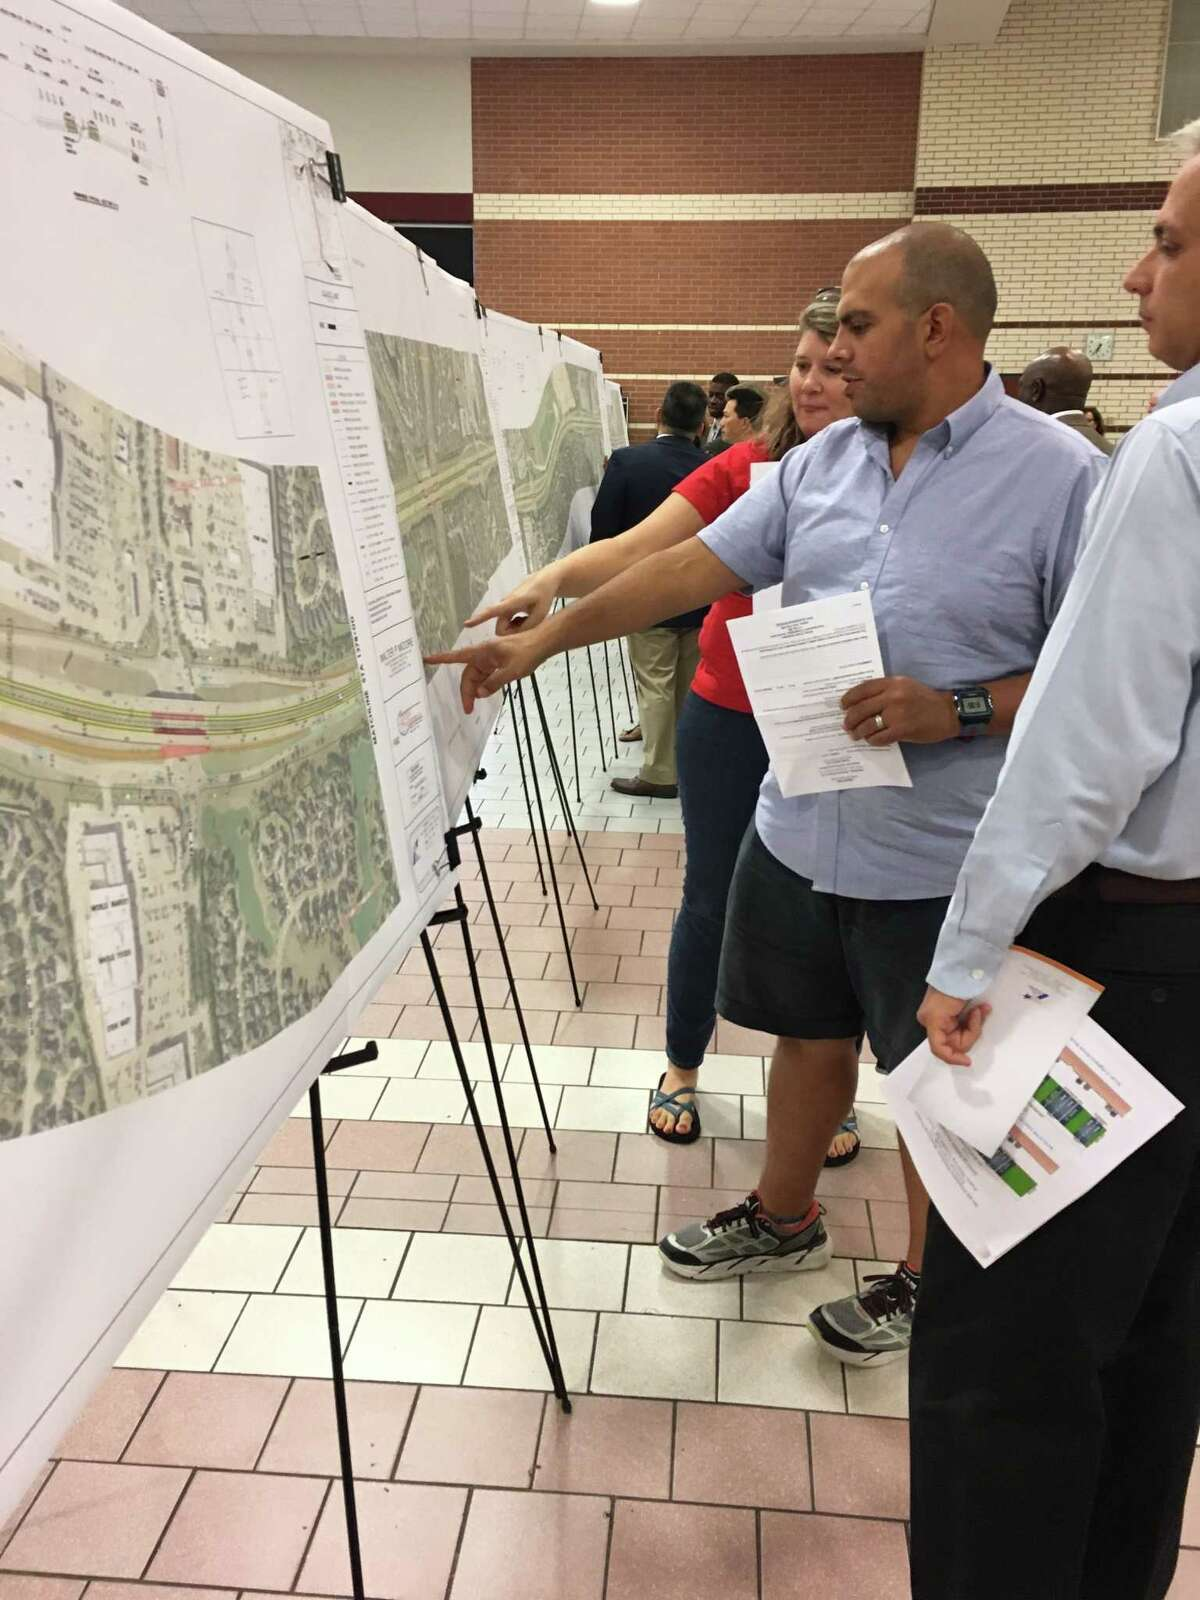 Grand Lakes resident Mitch Abahusayn, center, says noise levels are a problem with current traffic on Texas 99 between Interstate 10 and the Westpark Tollway.